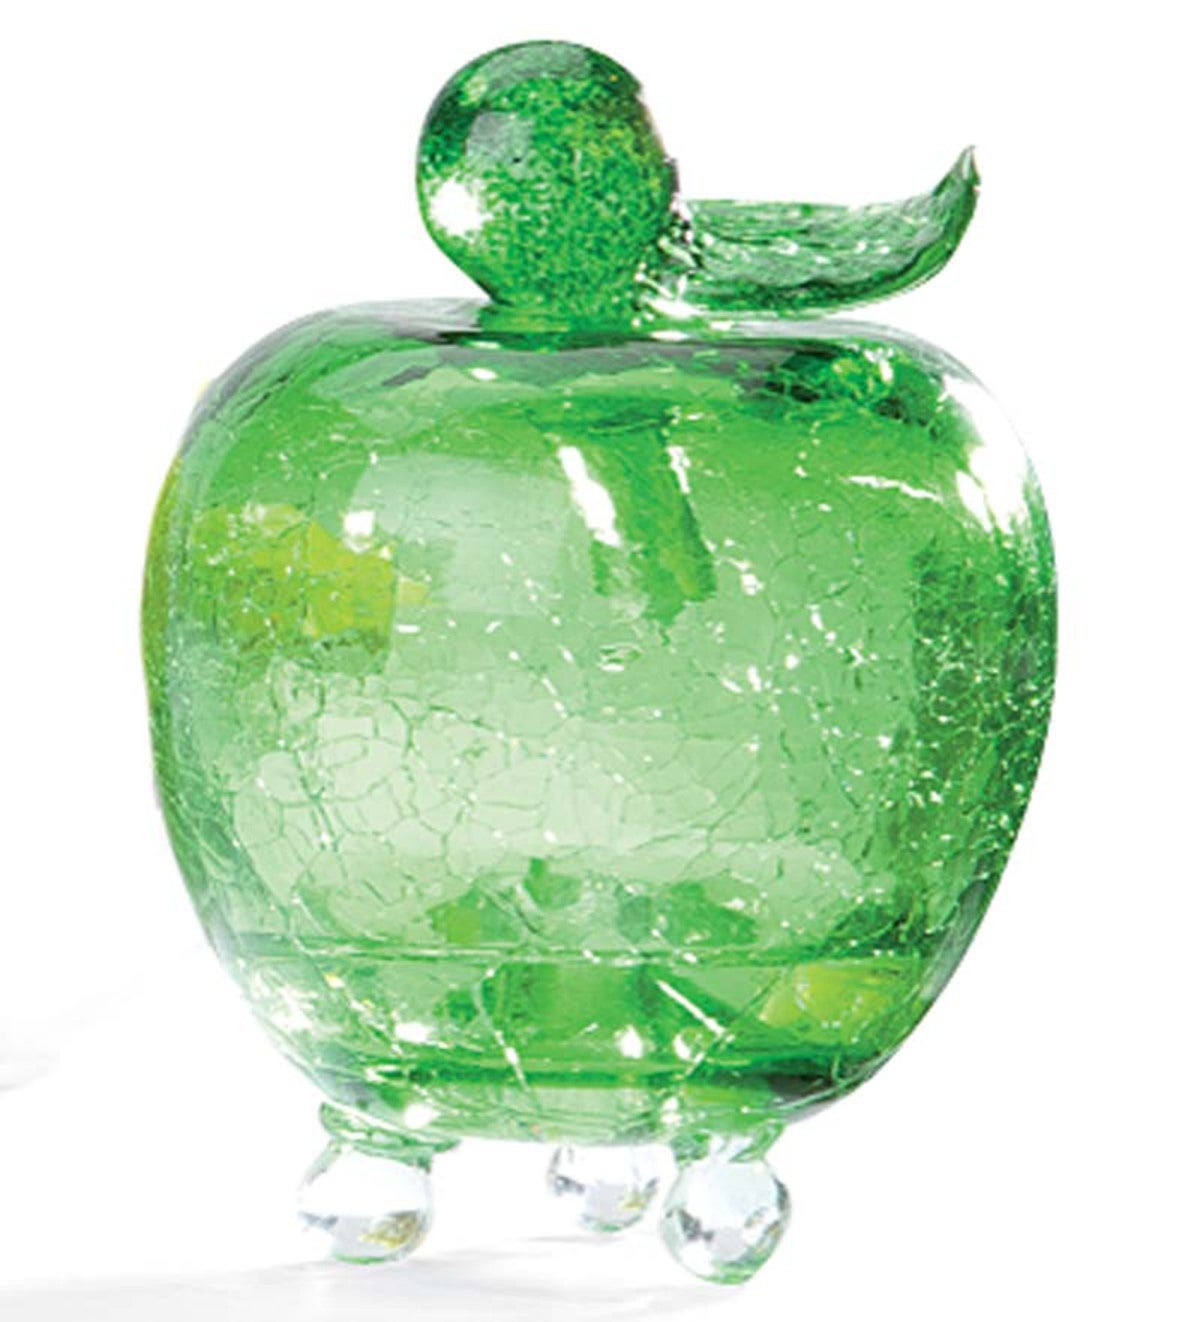 Handmade Crackle Glass Apple Fruit Fly Trap - Green